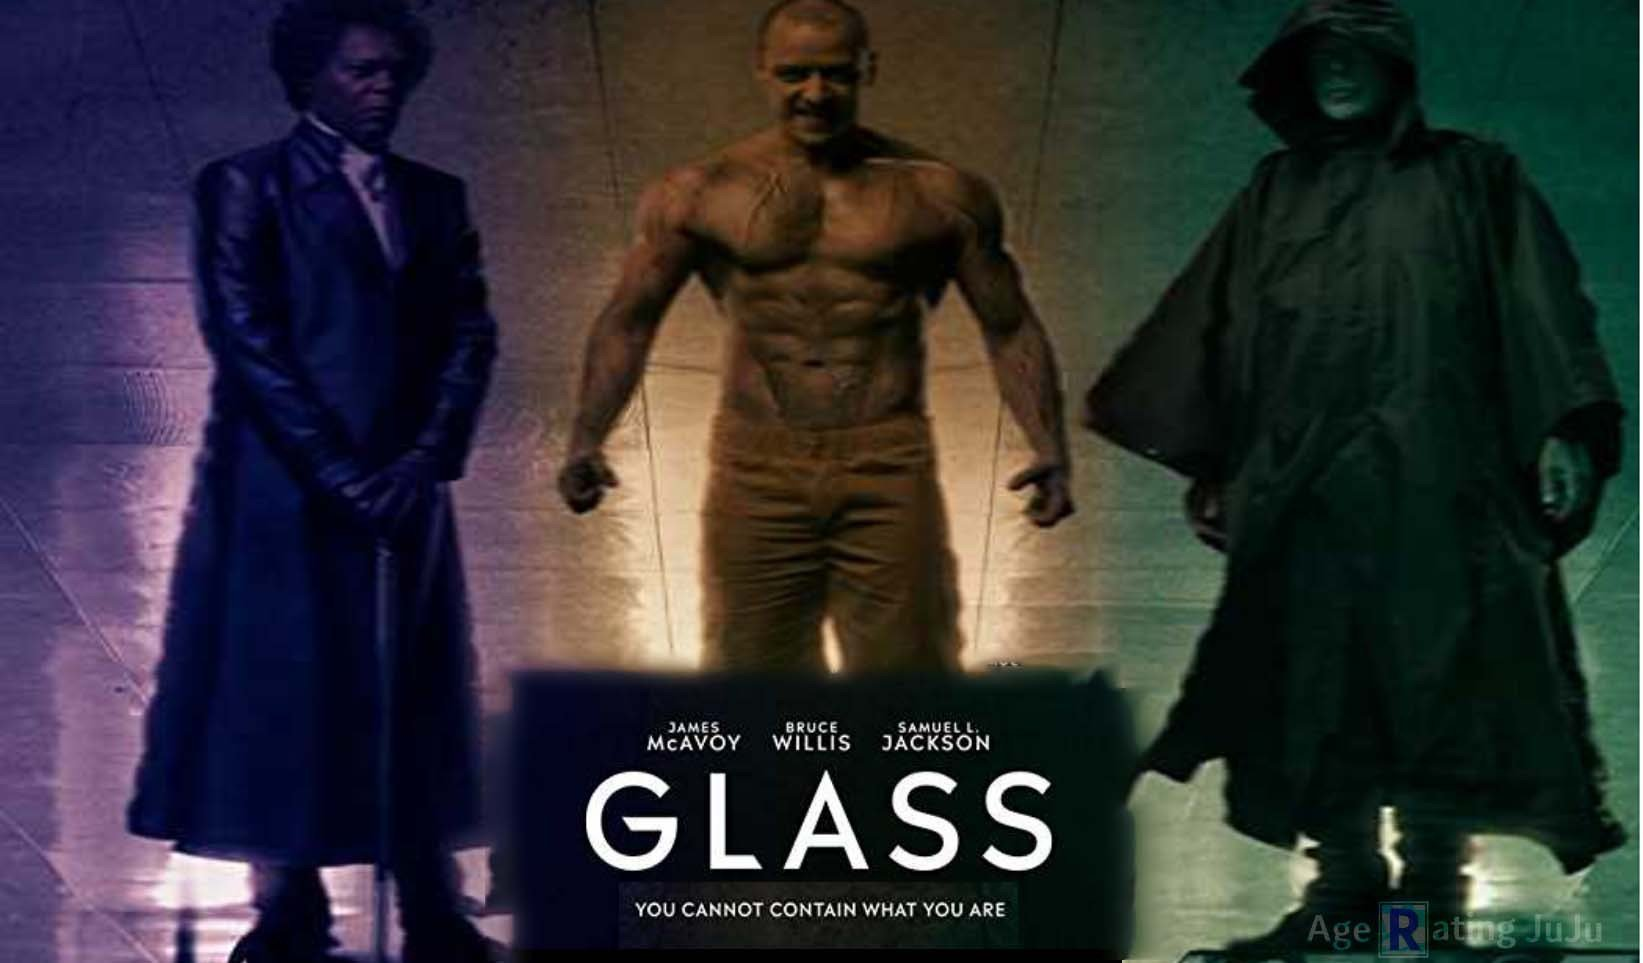 Posters Movie 2019 After: The Second Trailer For 'GLASS' Brings Us Lots Of Bad Guys